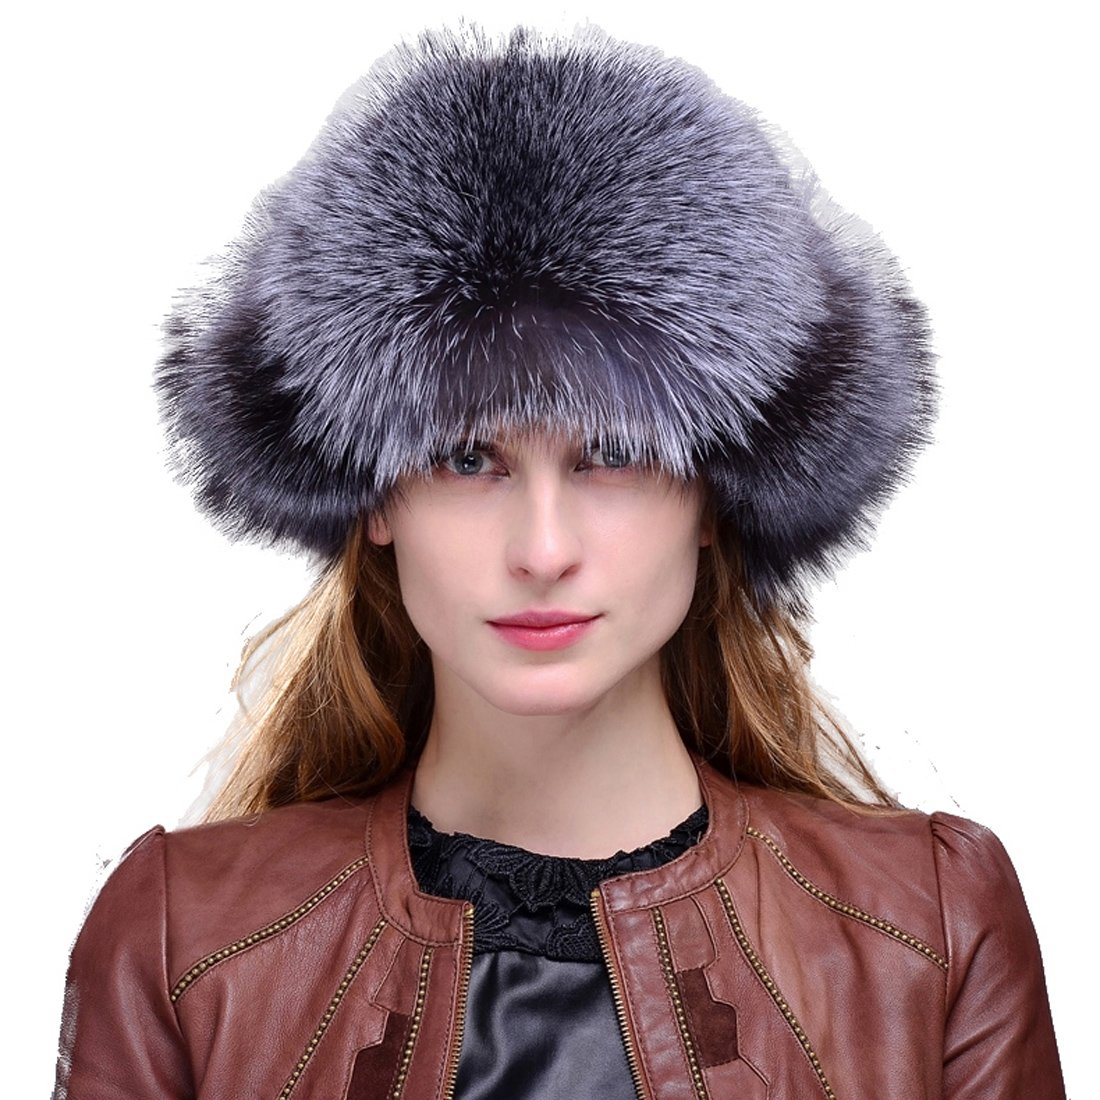 Women's Silver Indigo Fox Fur & Leather Russian Ushanka Hat with Fox Pom Poms Natural Color